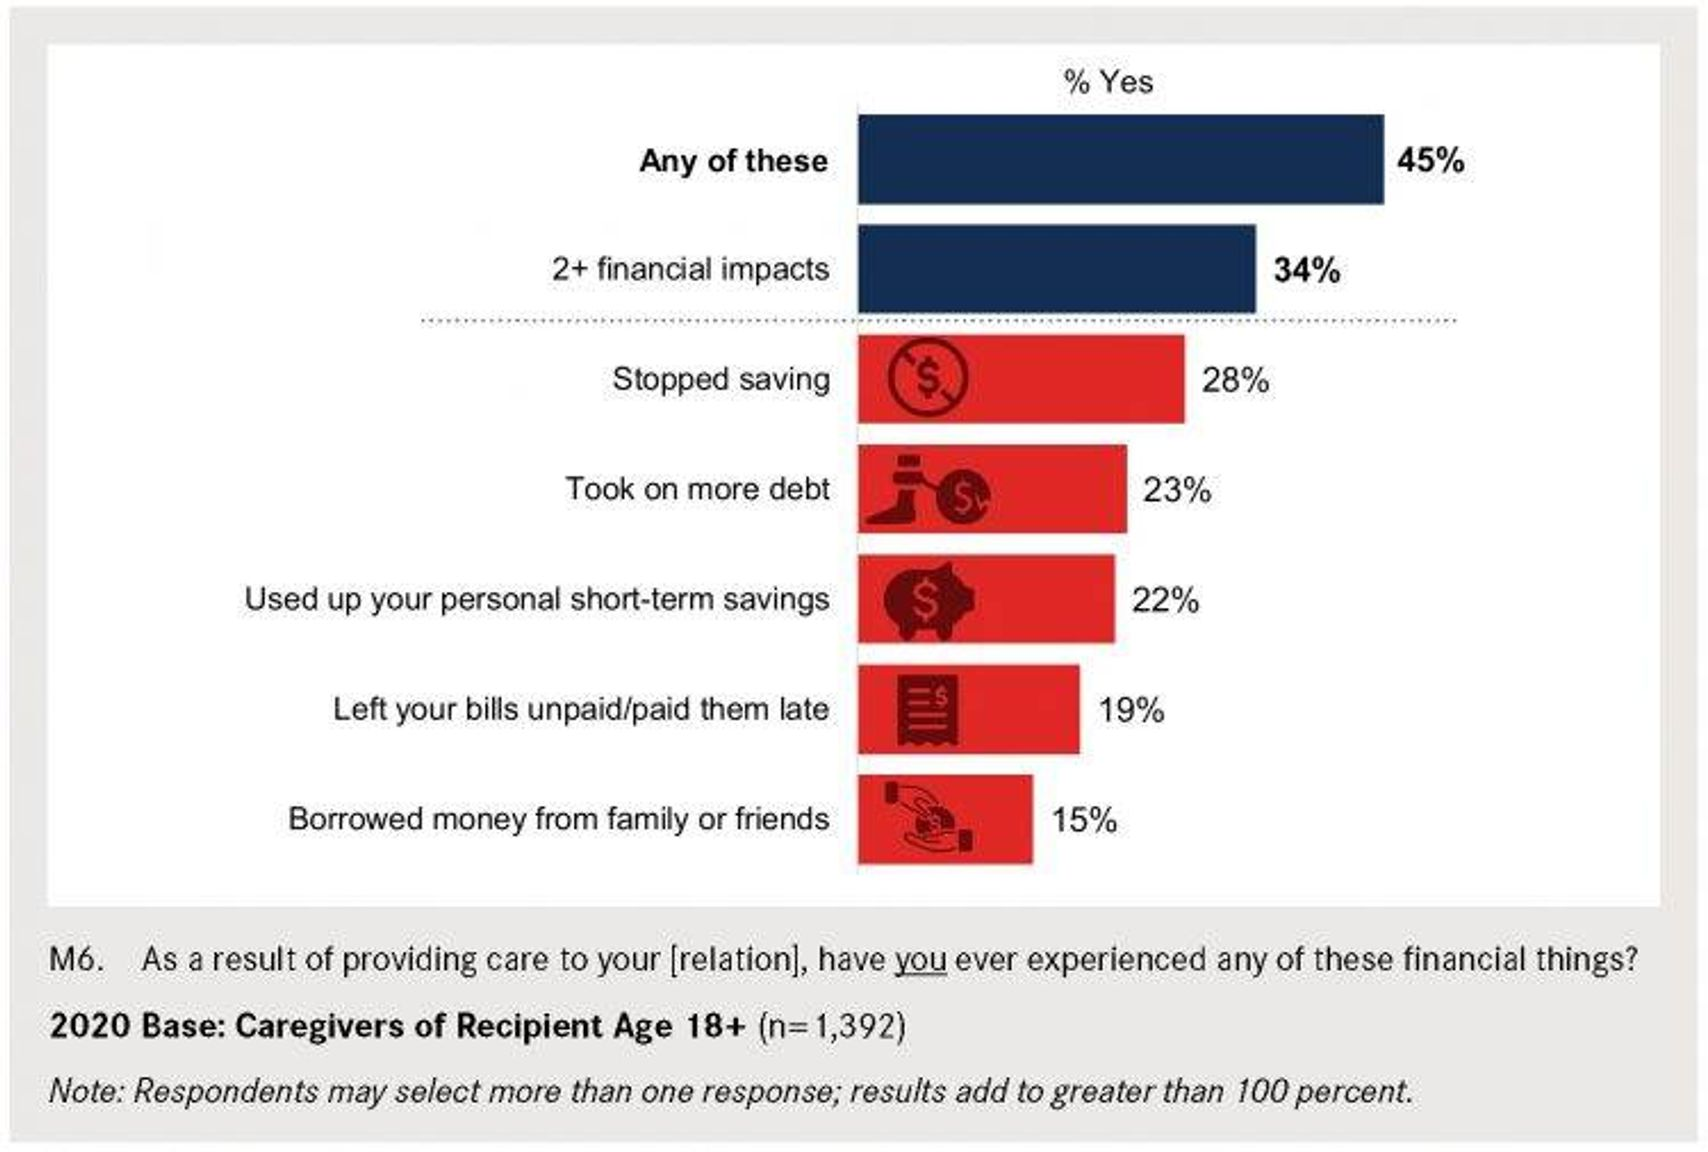 Top Financial Impacts as a Result of Caregiving Chart